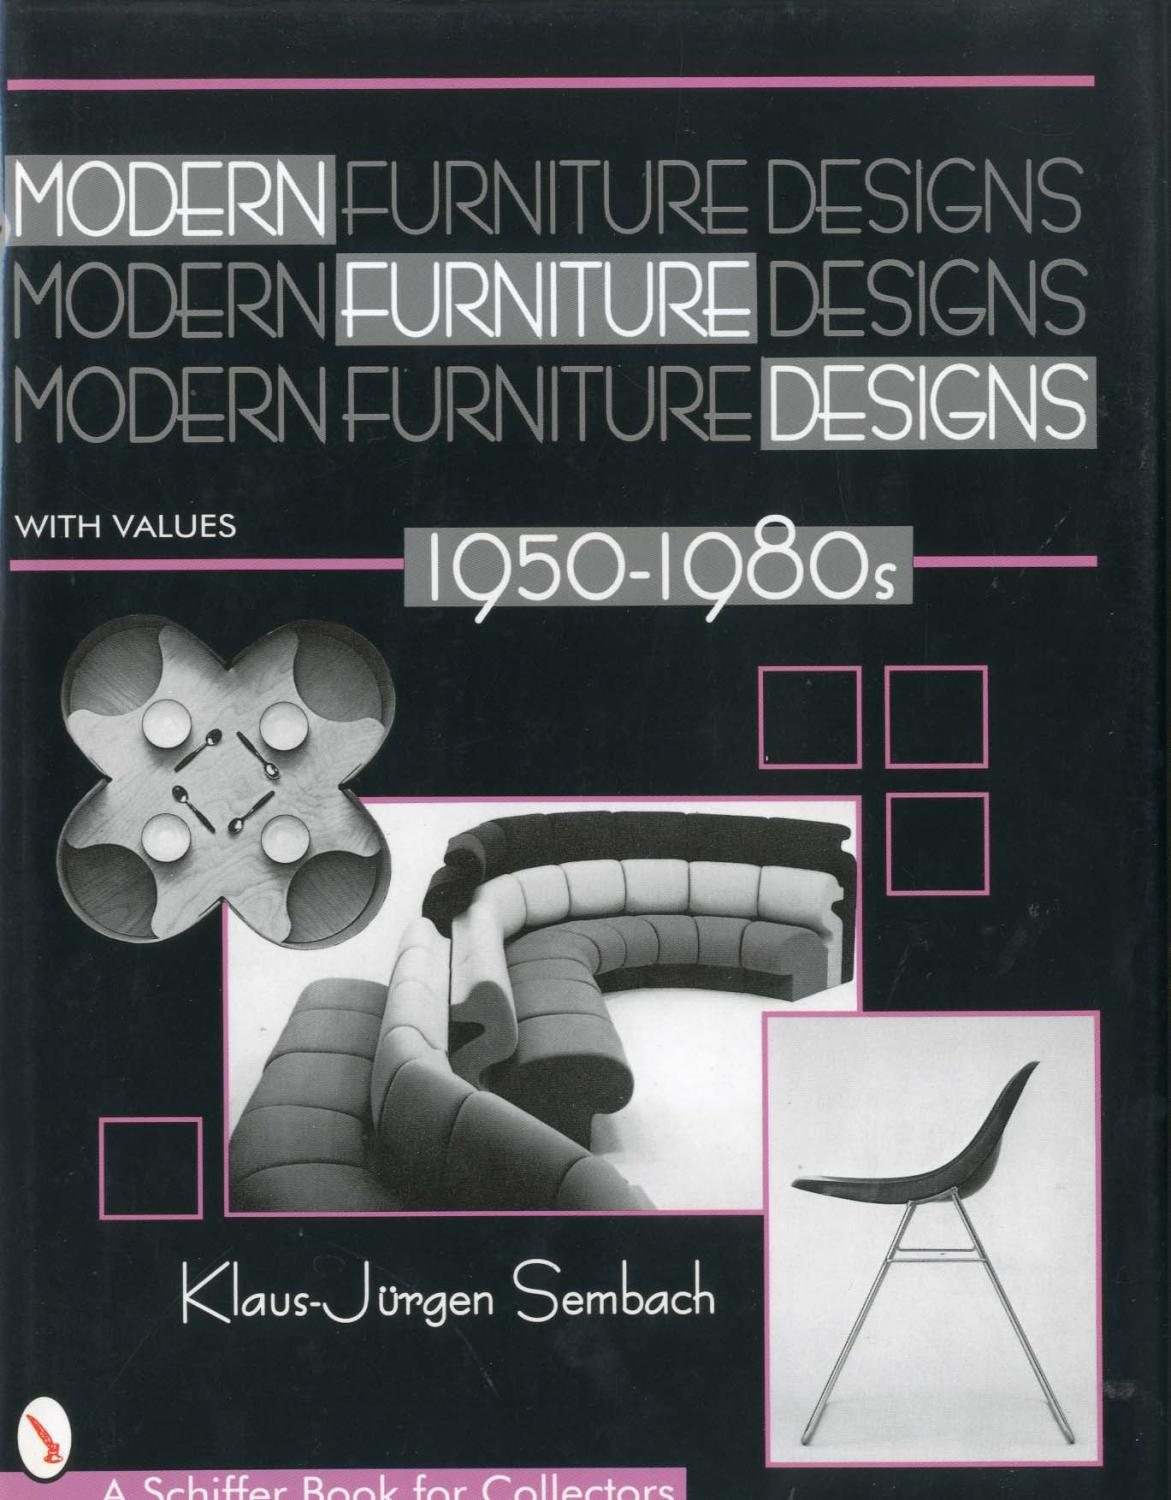 Modern Furniture Design 1959-1980 - Klaus-Jürgen Sembach